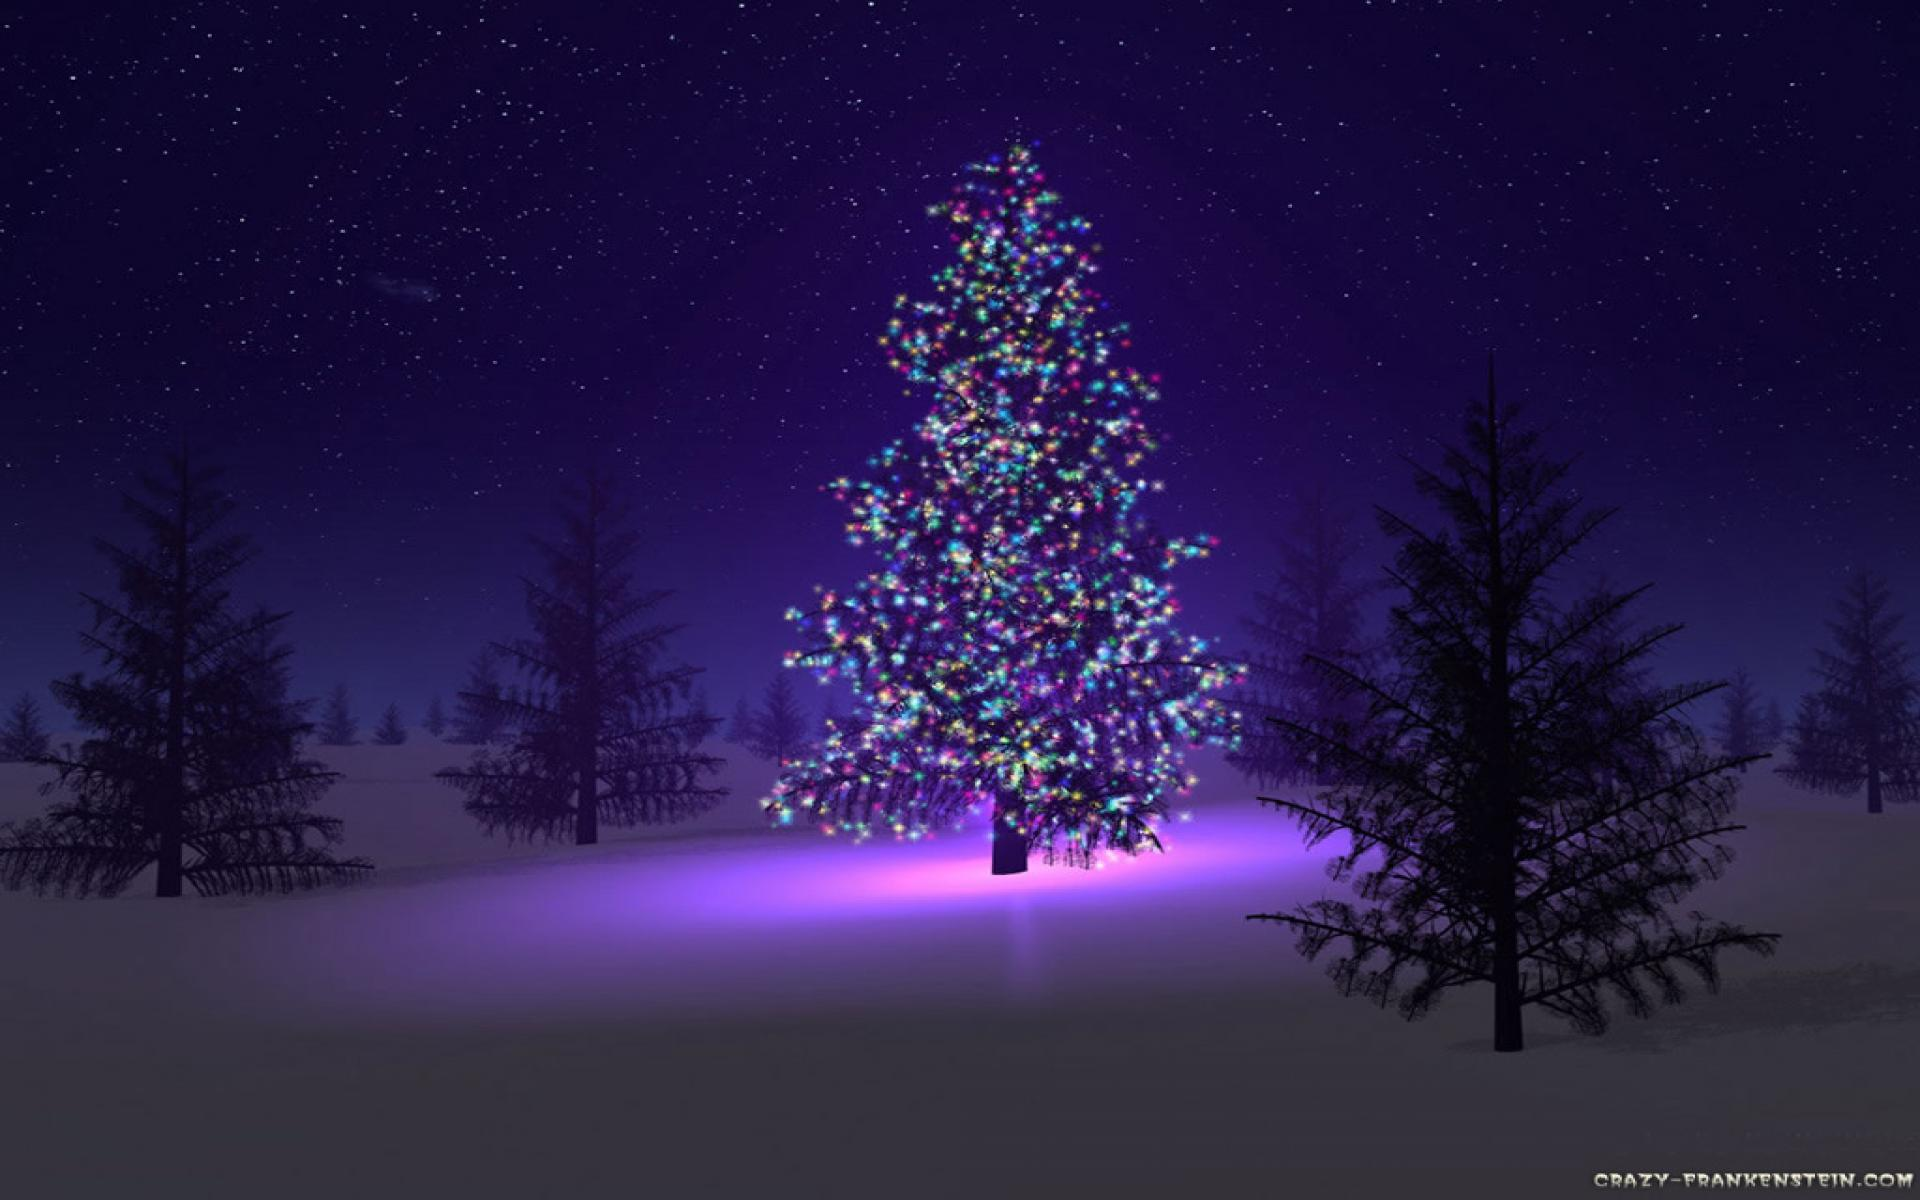 Tree HD Wallpapers 1920x1200 Christmas Wallpapers 1920x1200 Download 1920x1200